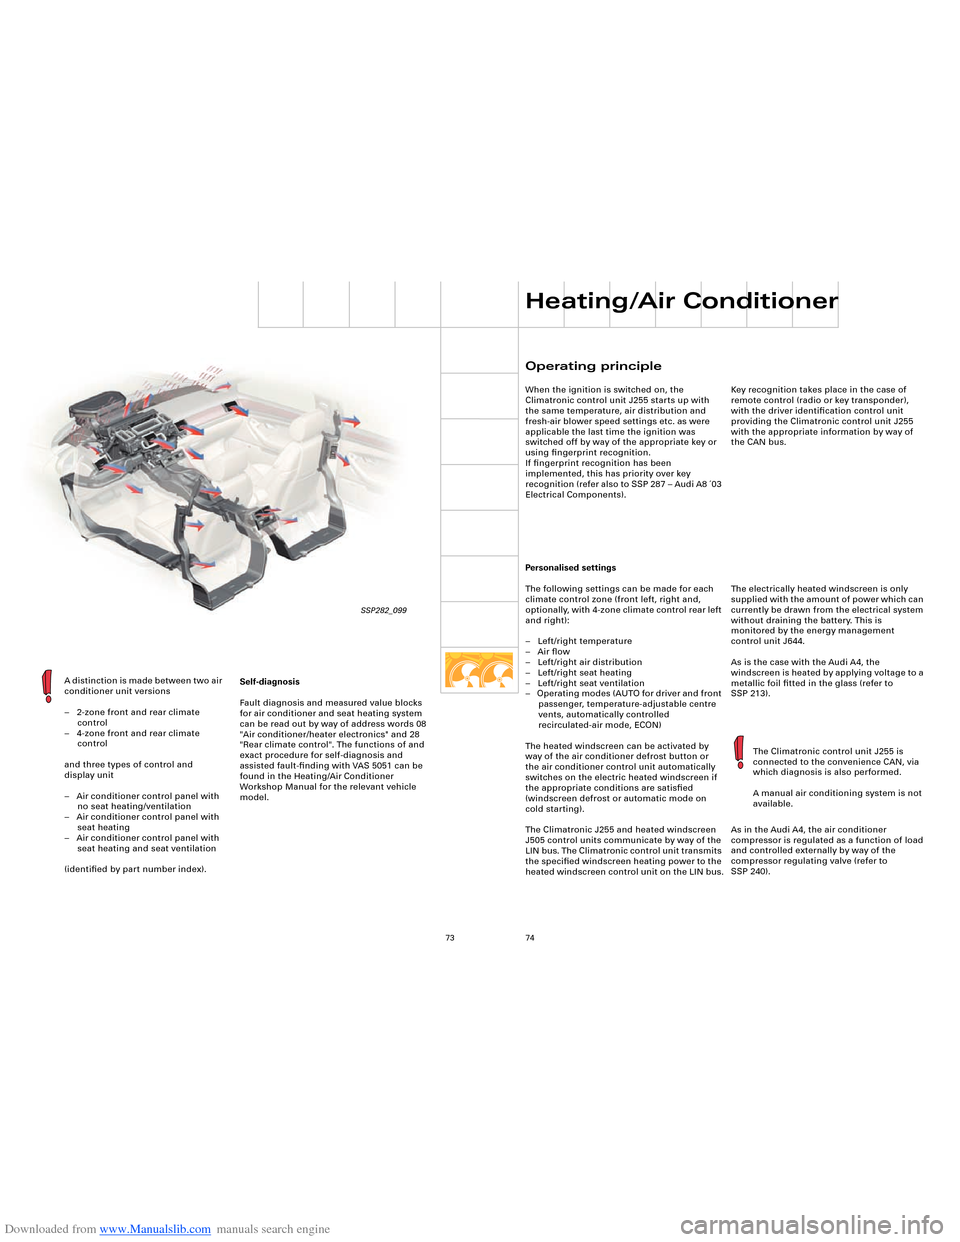 Engine Audi A8 2003 D3 2g Technical Features Manual 4 2 Diagram Front Page 73